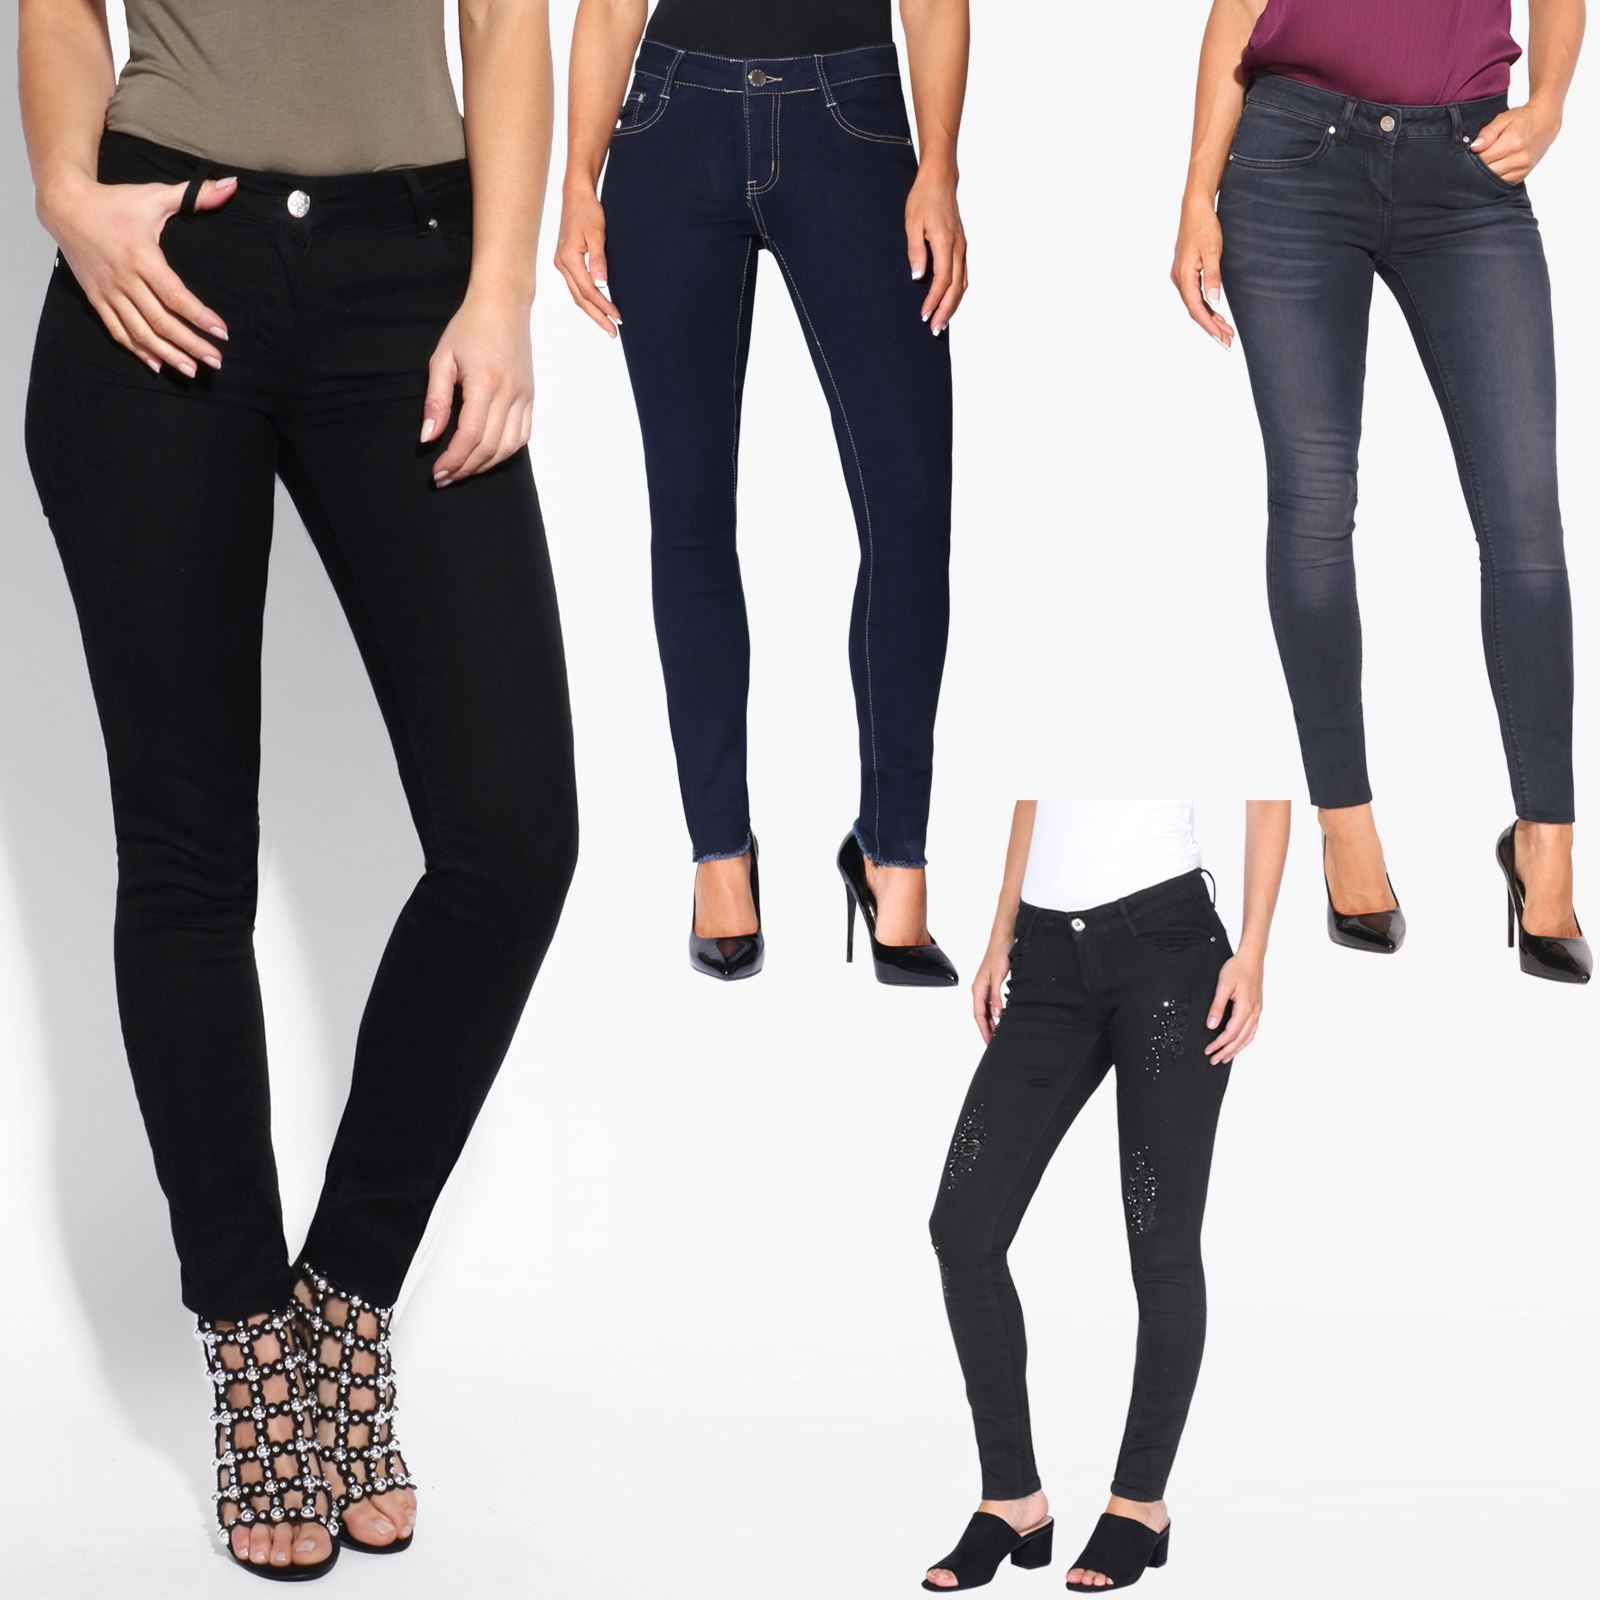 a7d27172bd Women Ladies Ankle Long £10 Skinny Jeans Fitted Slim Leg Soft Denim Pants  Summer